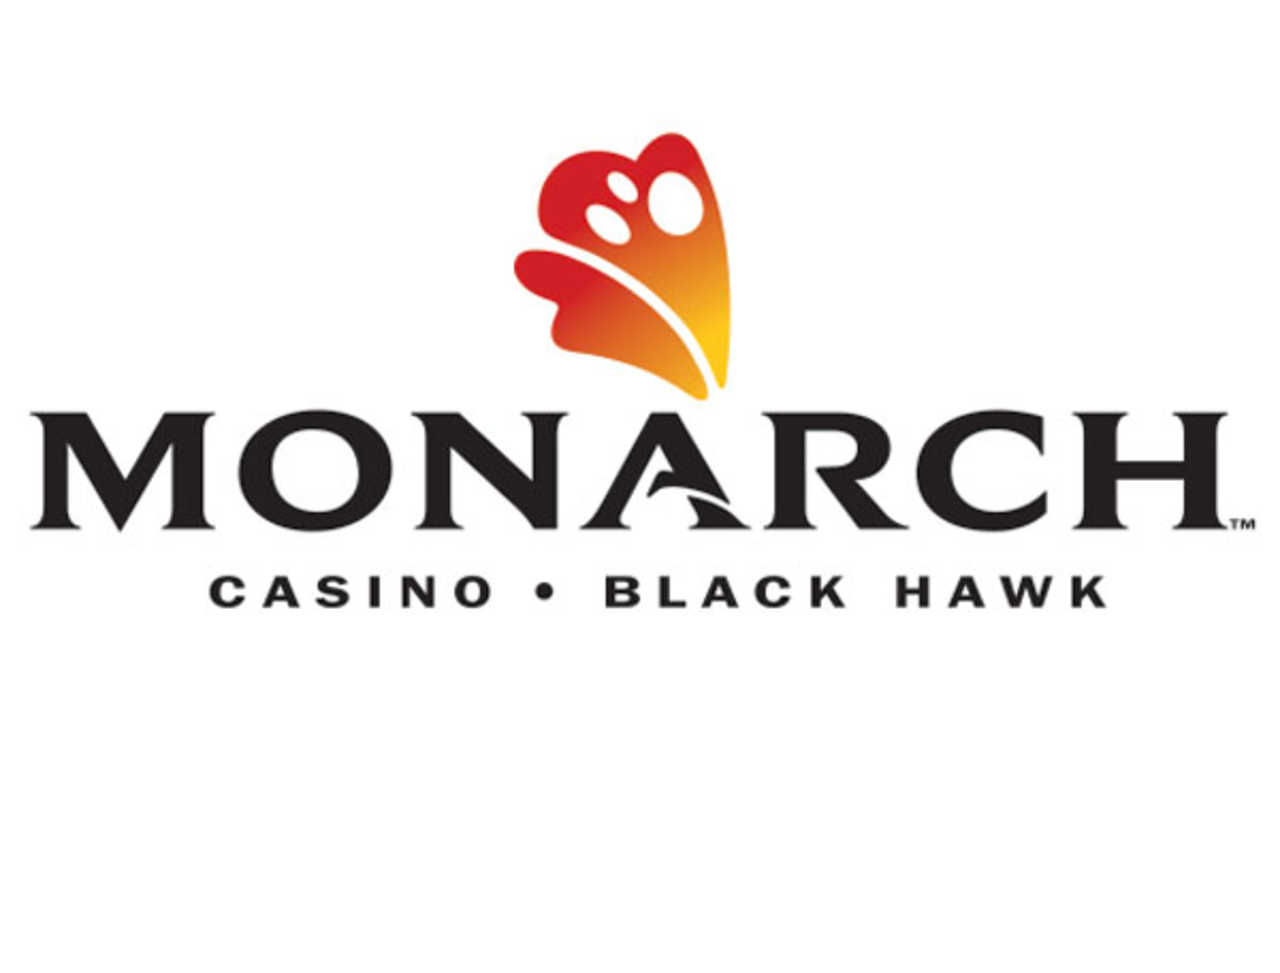 Monarch Casino - Recreation - Casinos in Black Hawk CO